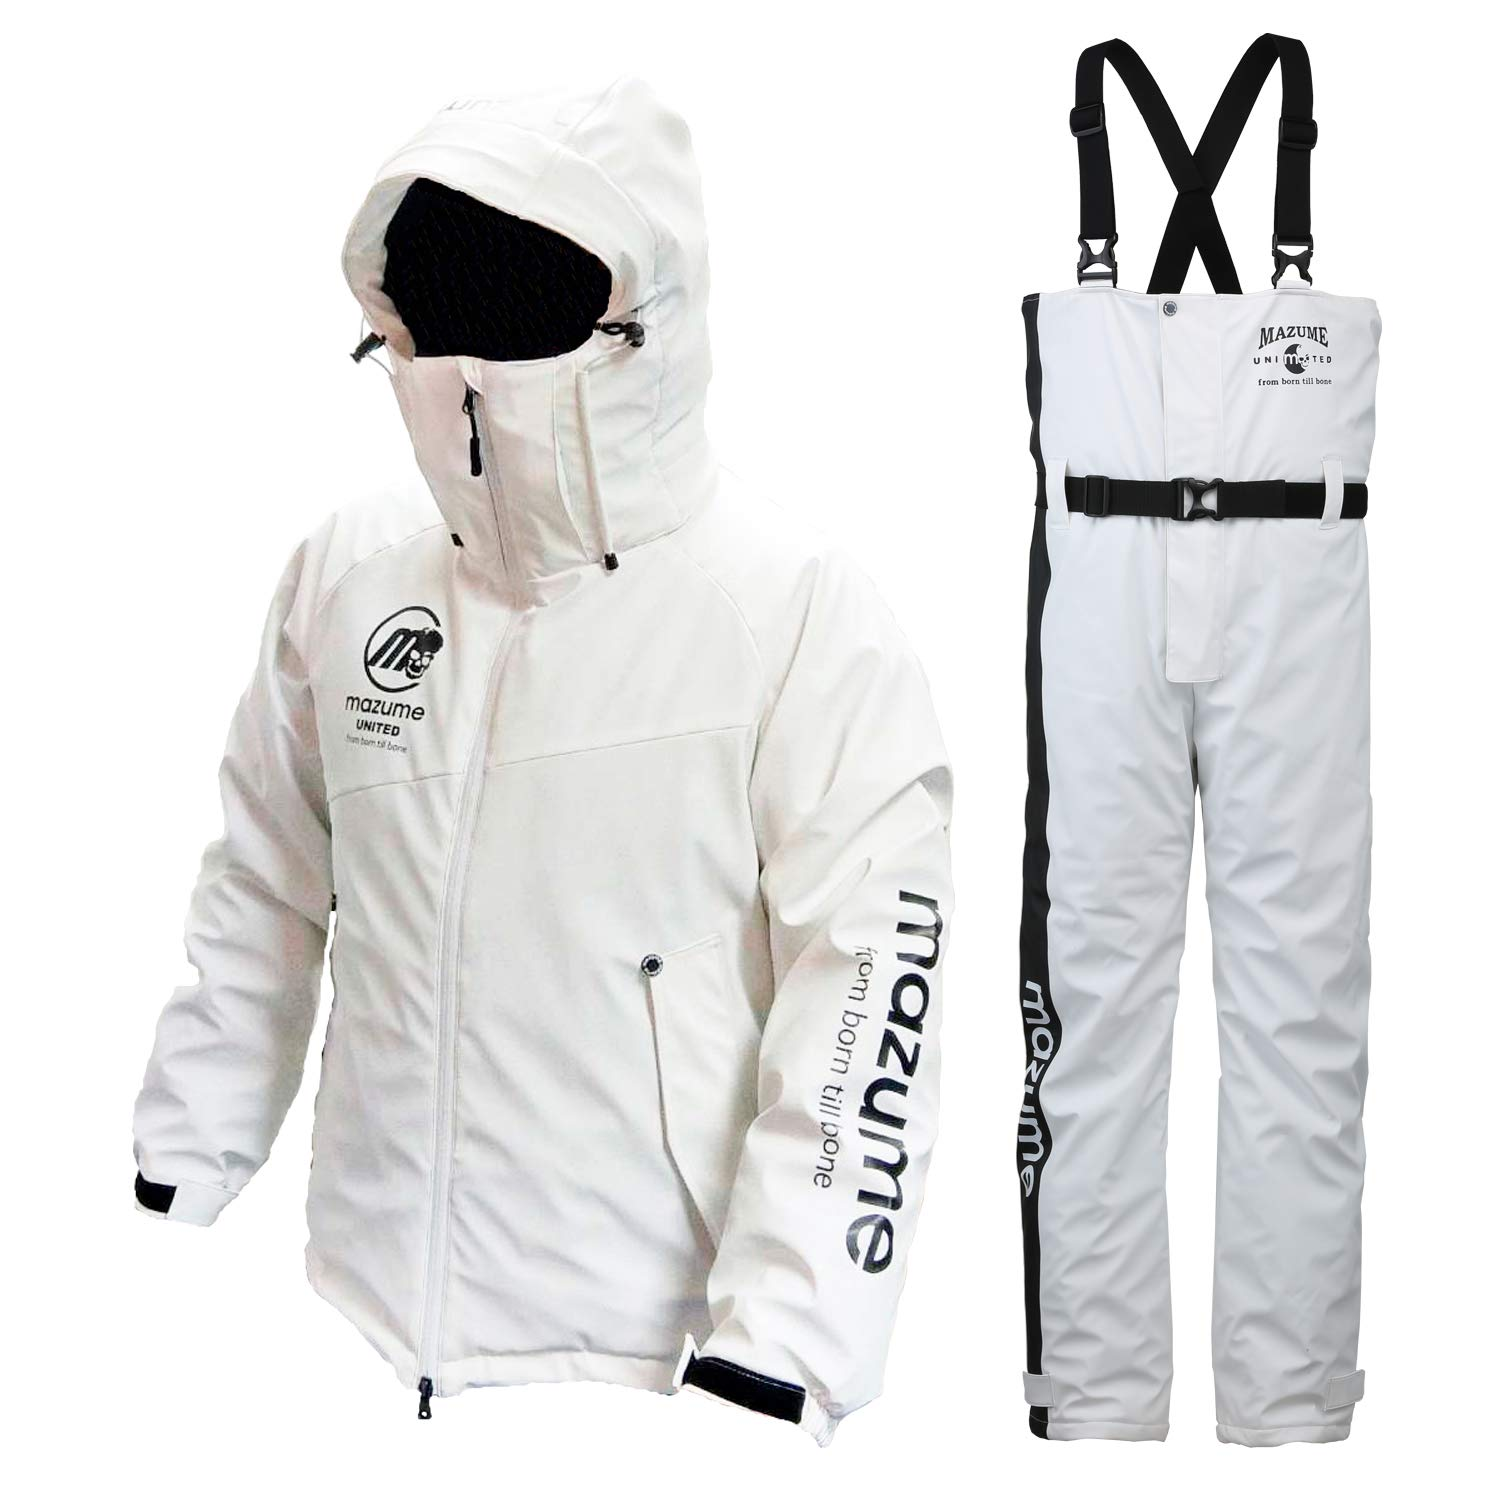 MAZUME(マズメ) ROUGH WATER ALL WEATHER SUIT MZFW-384 B07HBFTQDF ホワイト Large